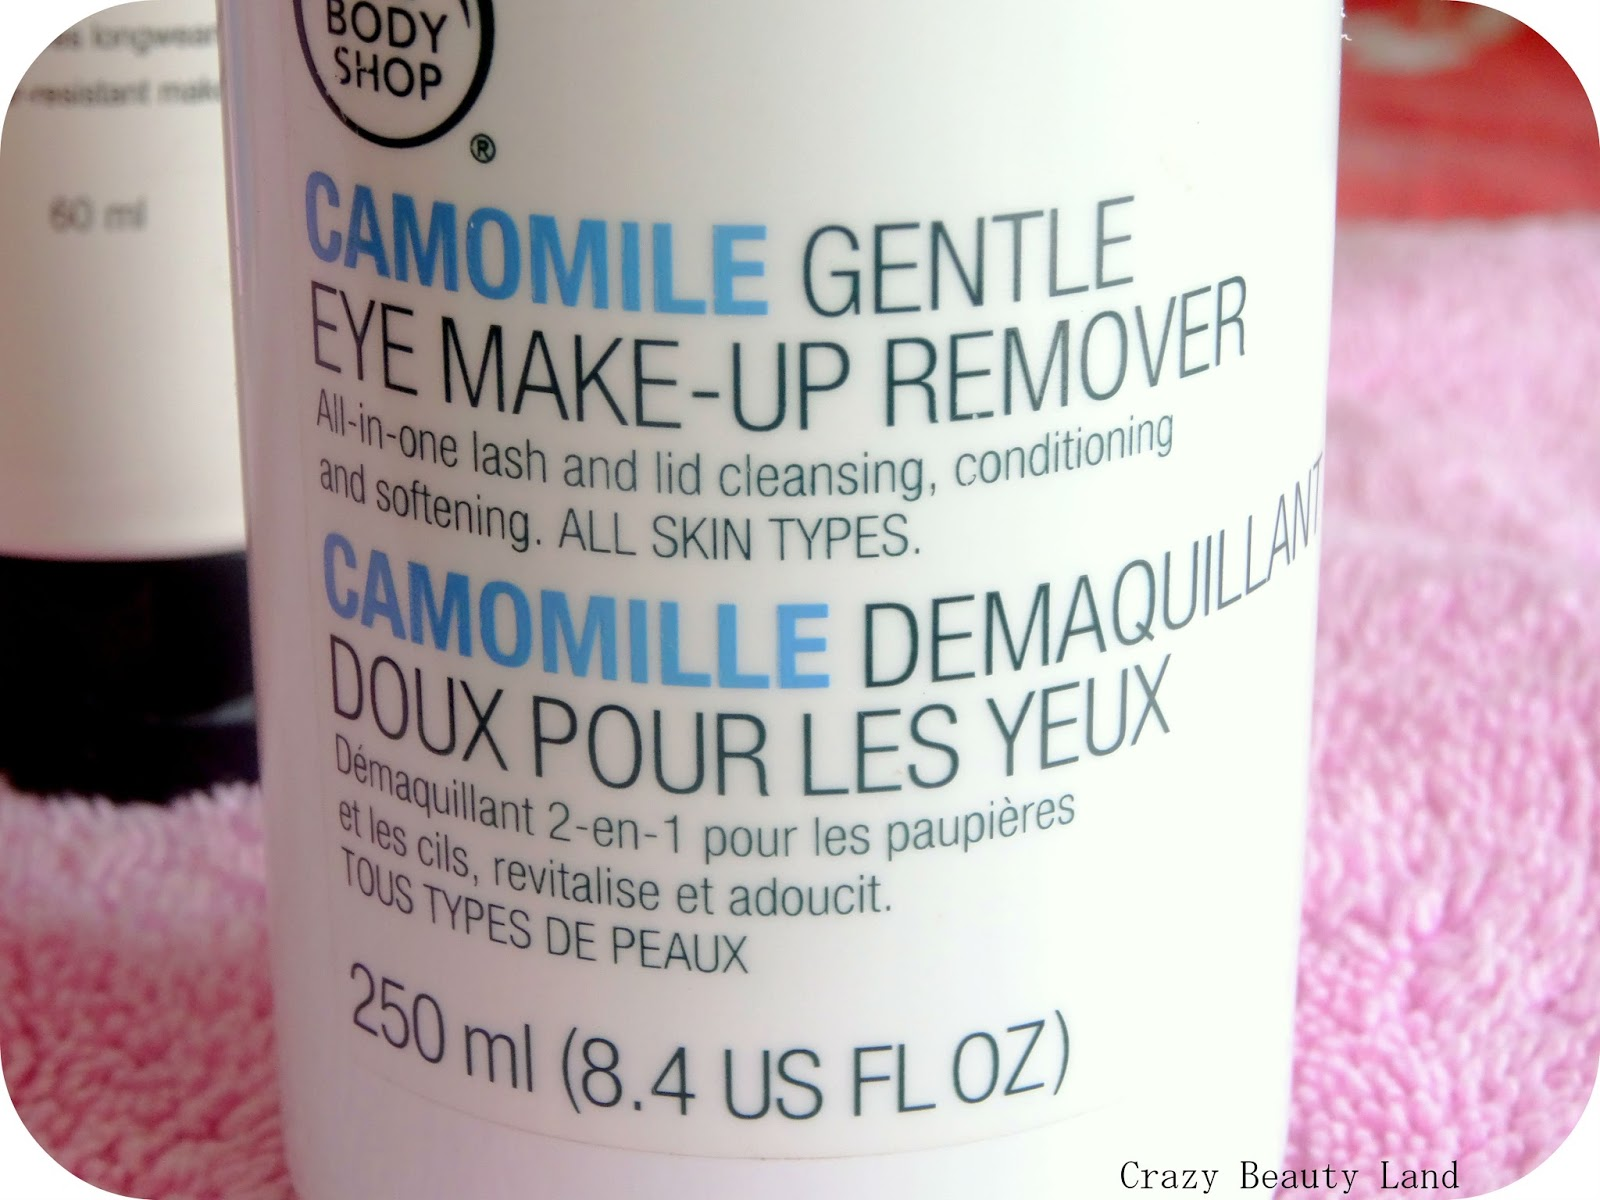 The Body Shop Camomile Gentle Eye Makeup Remover Review